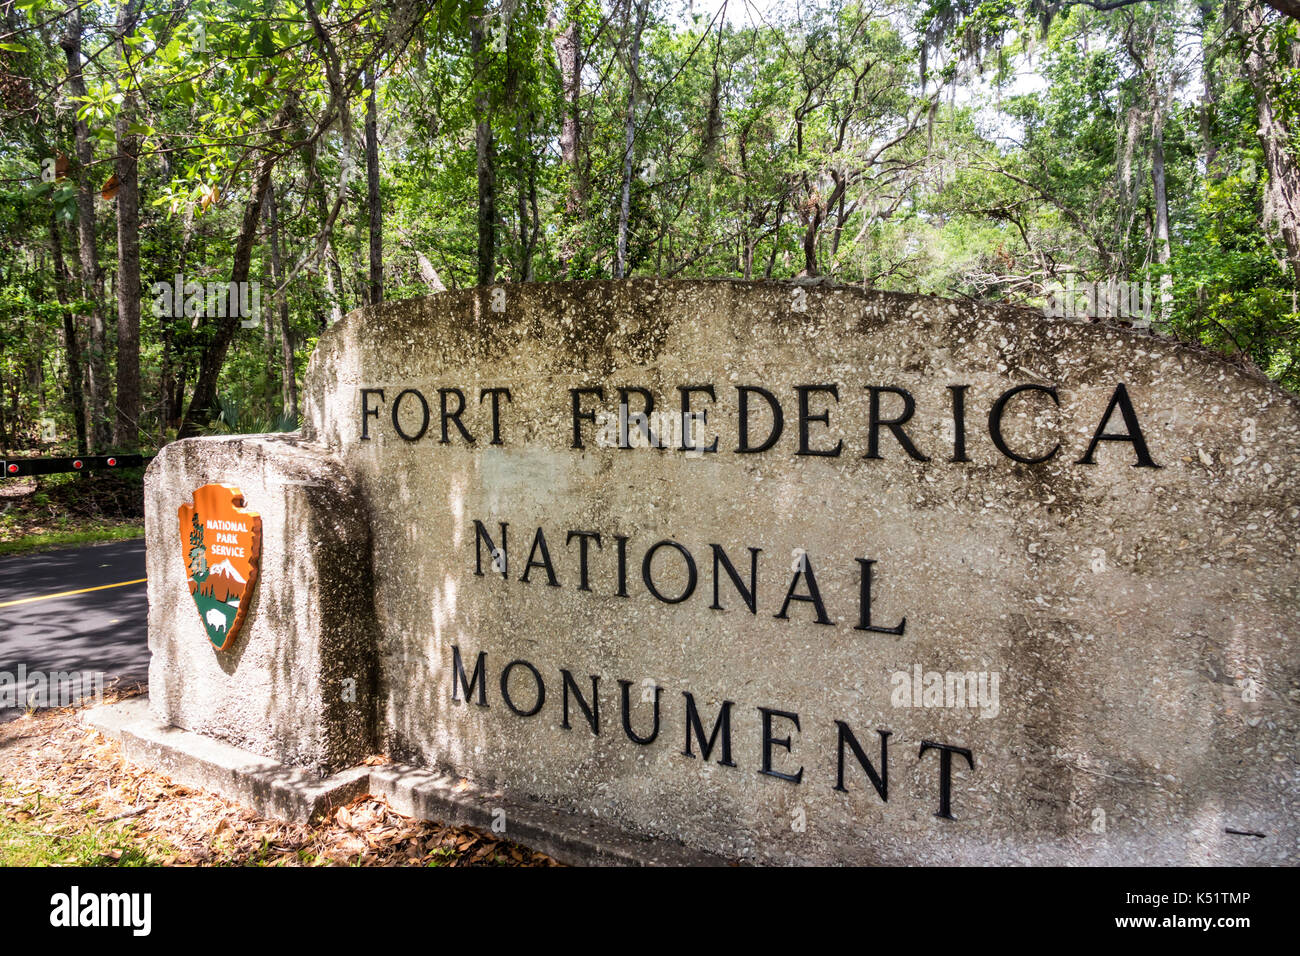 St. Saint Simons Island Georgia National Park Service Fort Frederica National Monument archaeological site sign - Stock Image